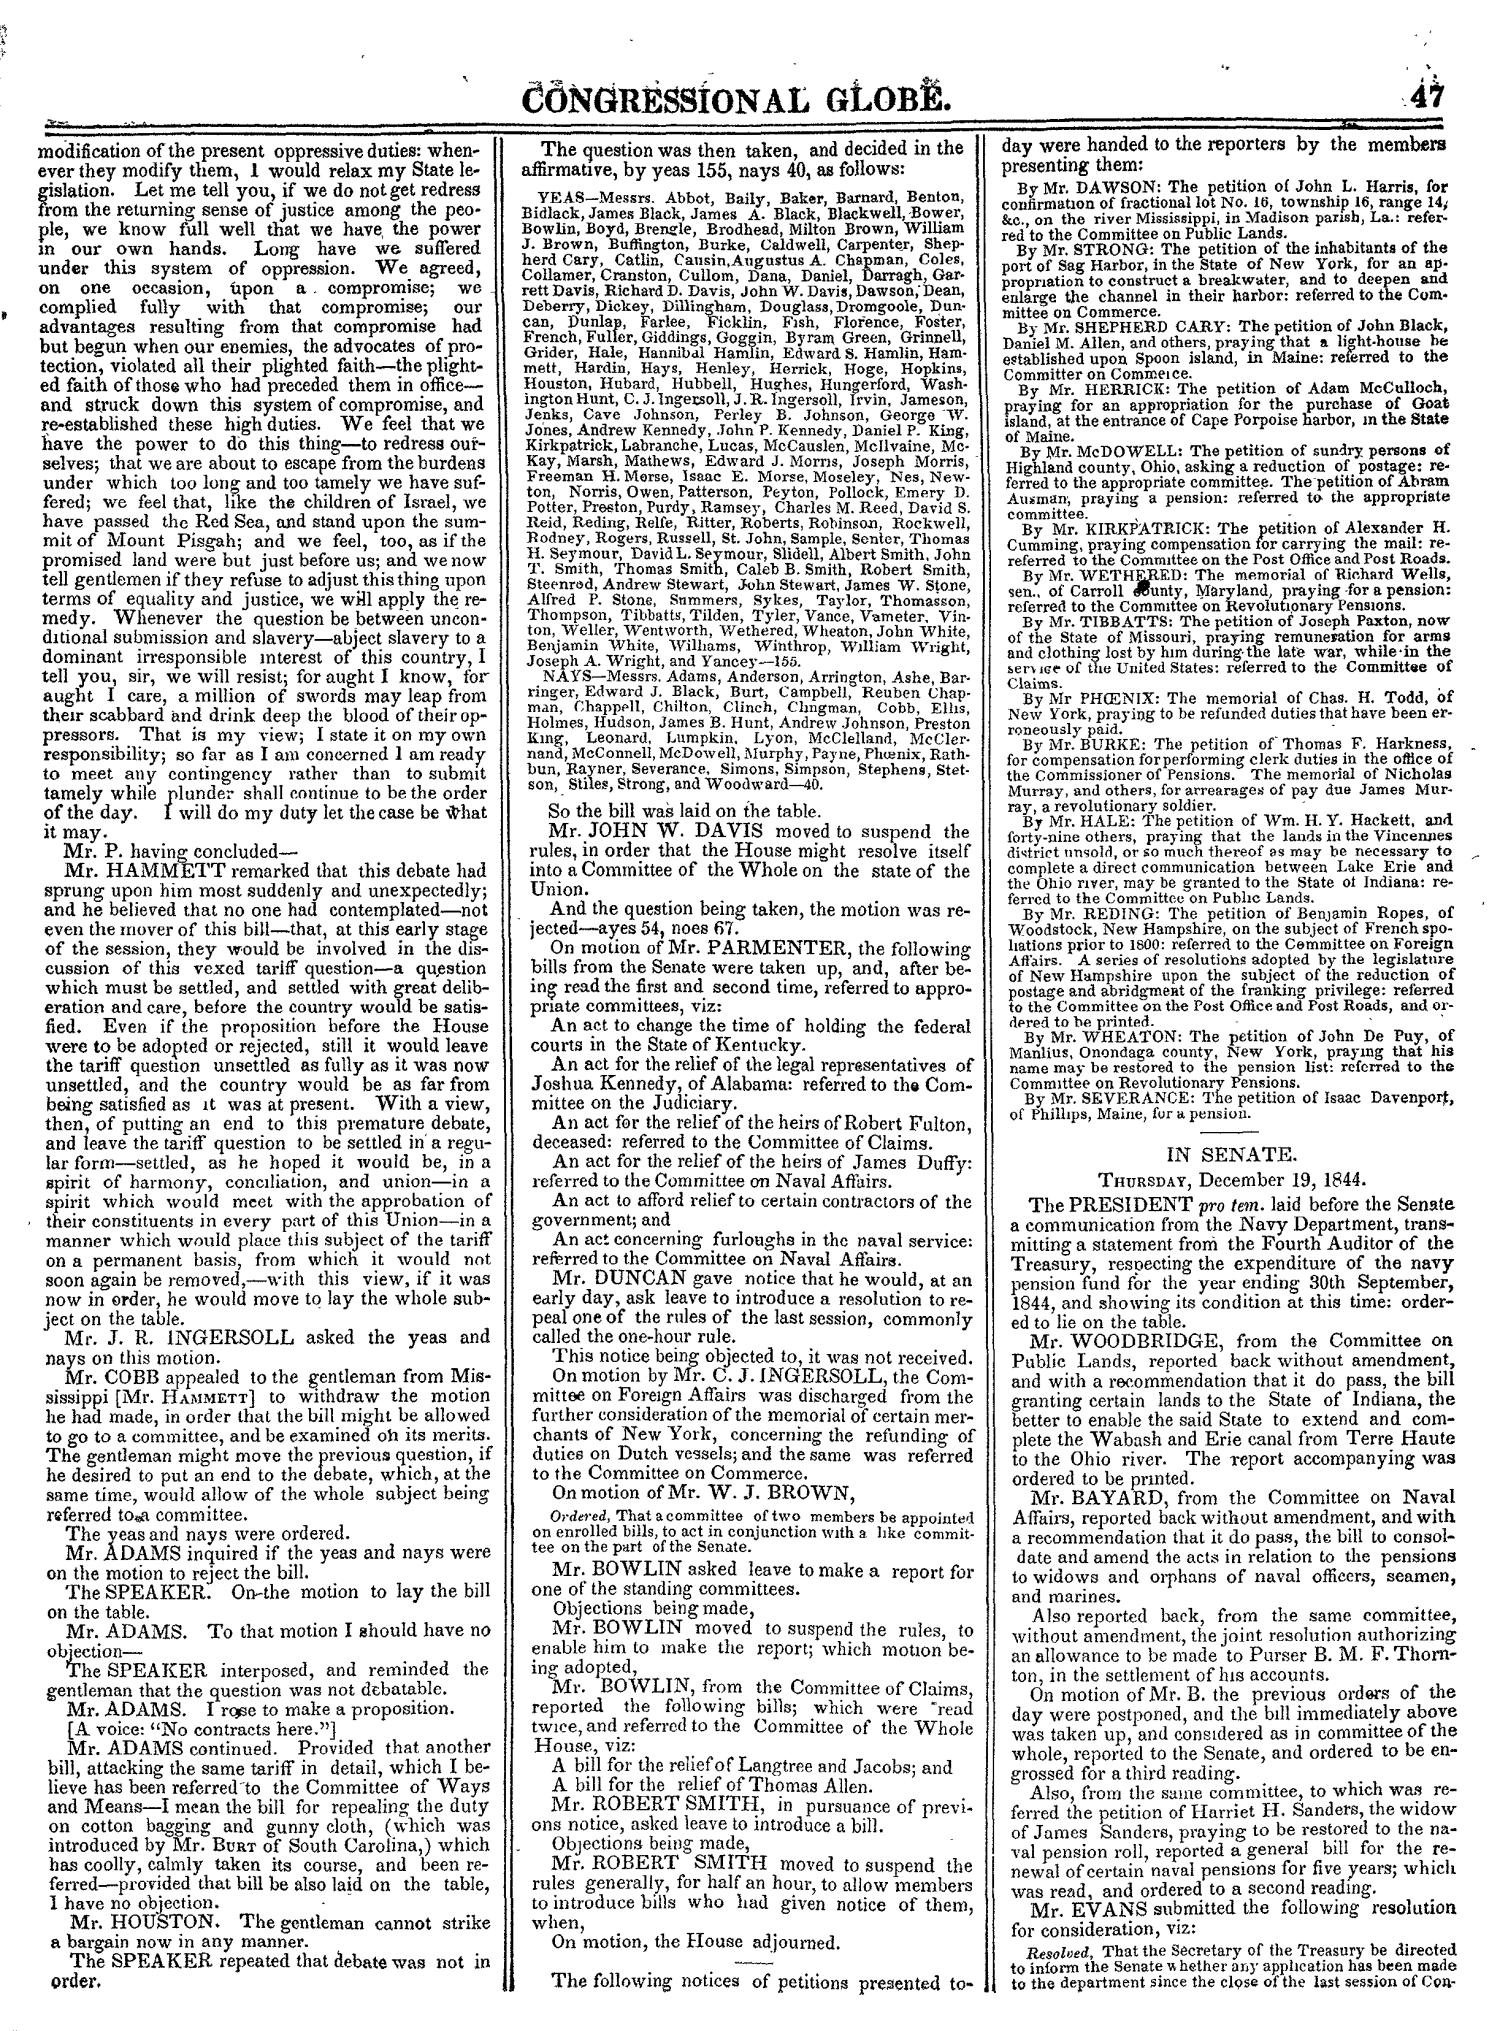 The Congressional Globe, Volume 14: Twenty-Eighth Congress, Second Session                                                                                                      47